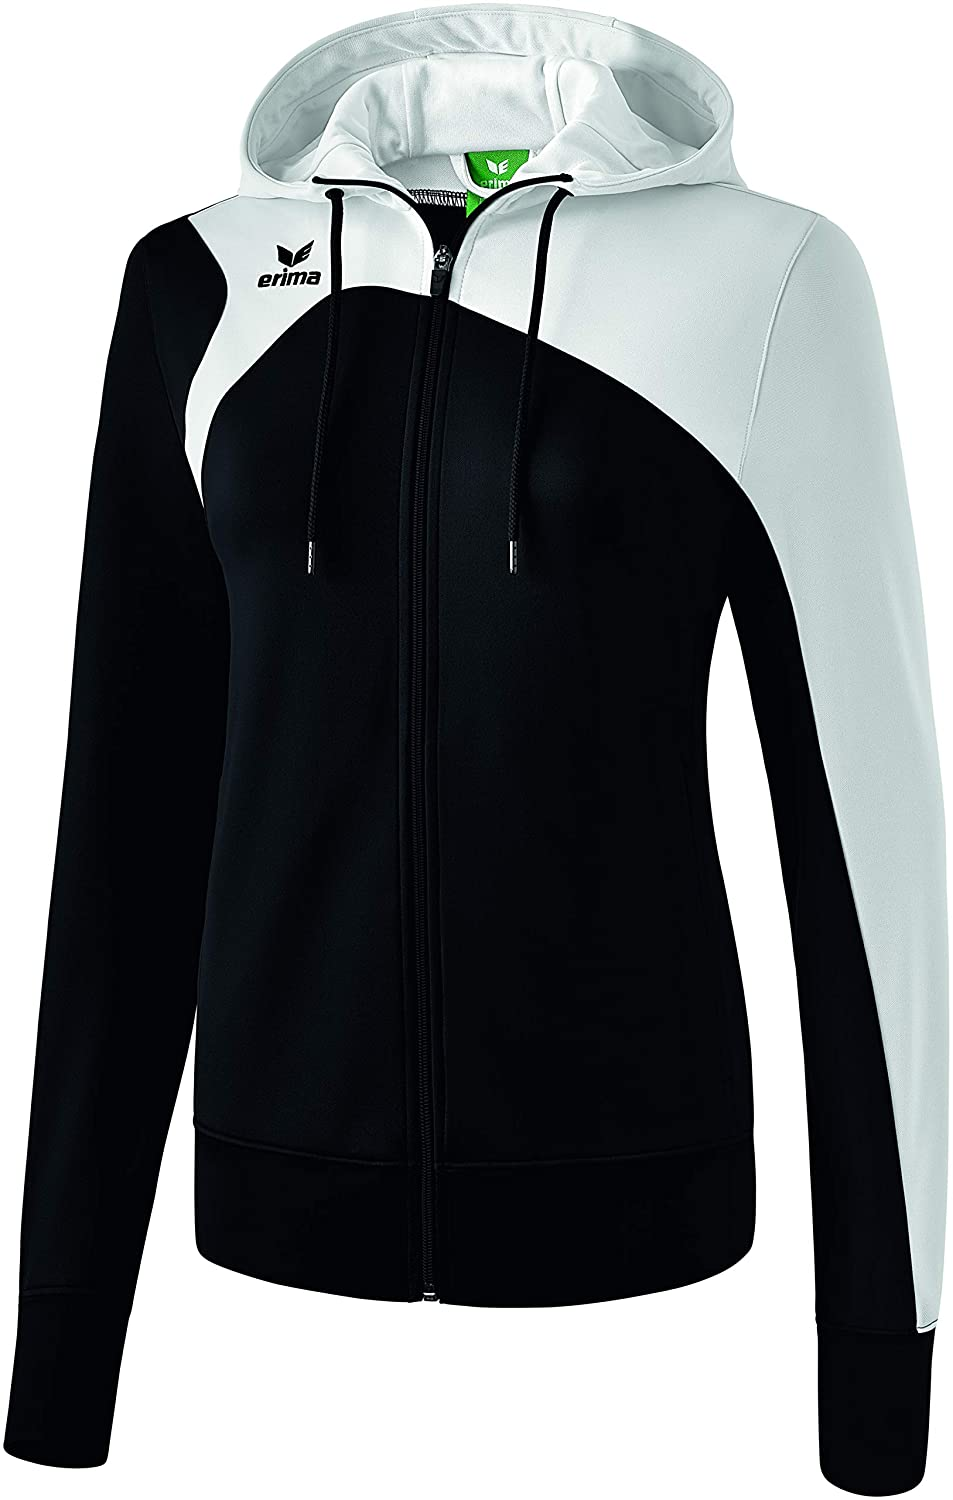 Erima Damen Club 1900 2.0 Trainingsjacke, mit Kapuze